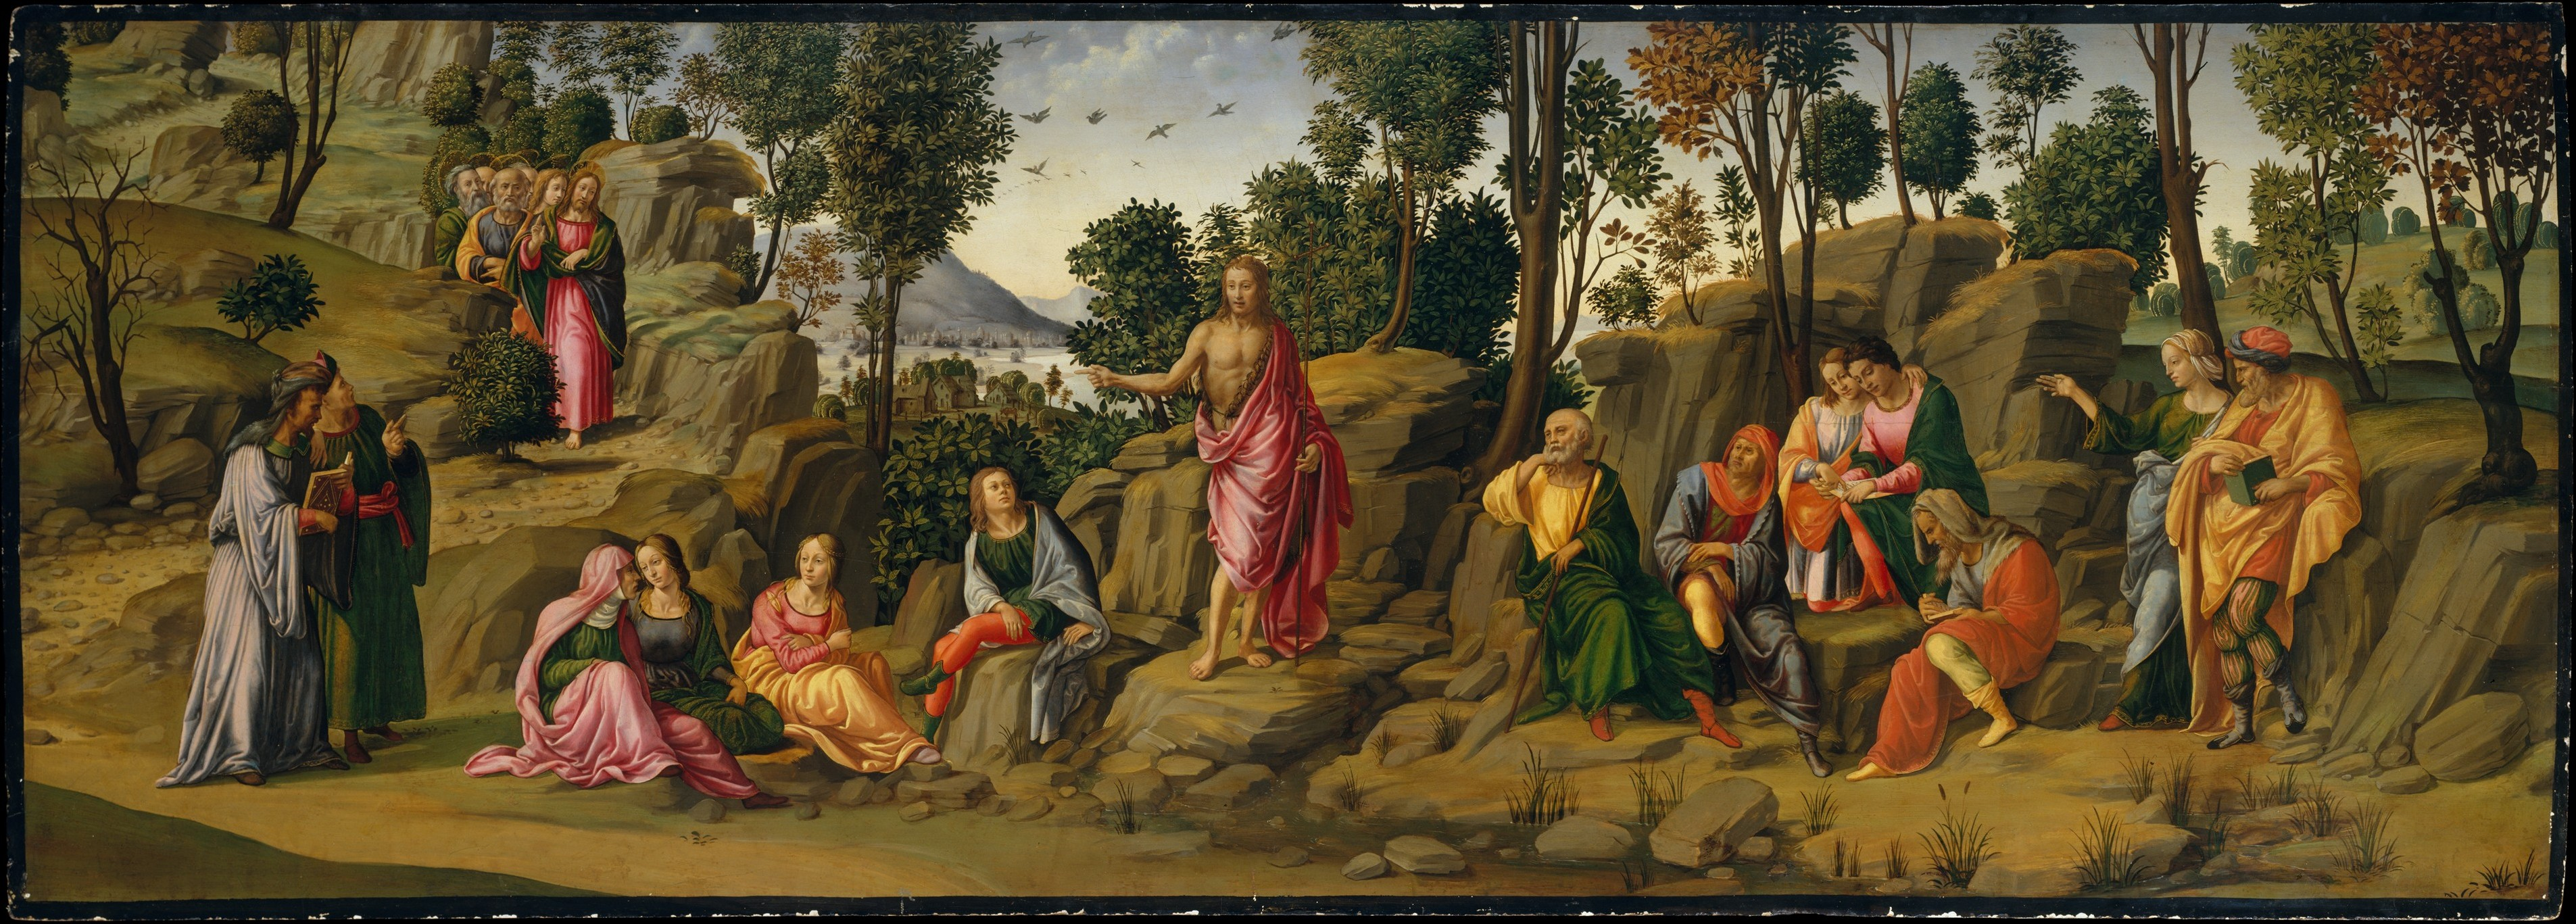 Saint John the Baptist Bearing Witness (painting)